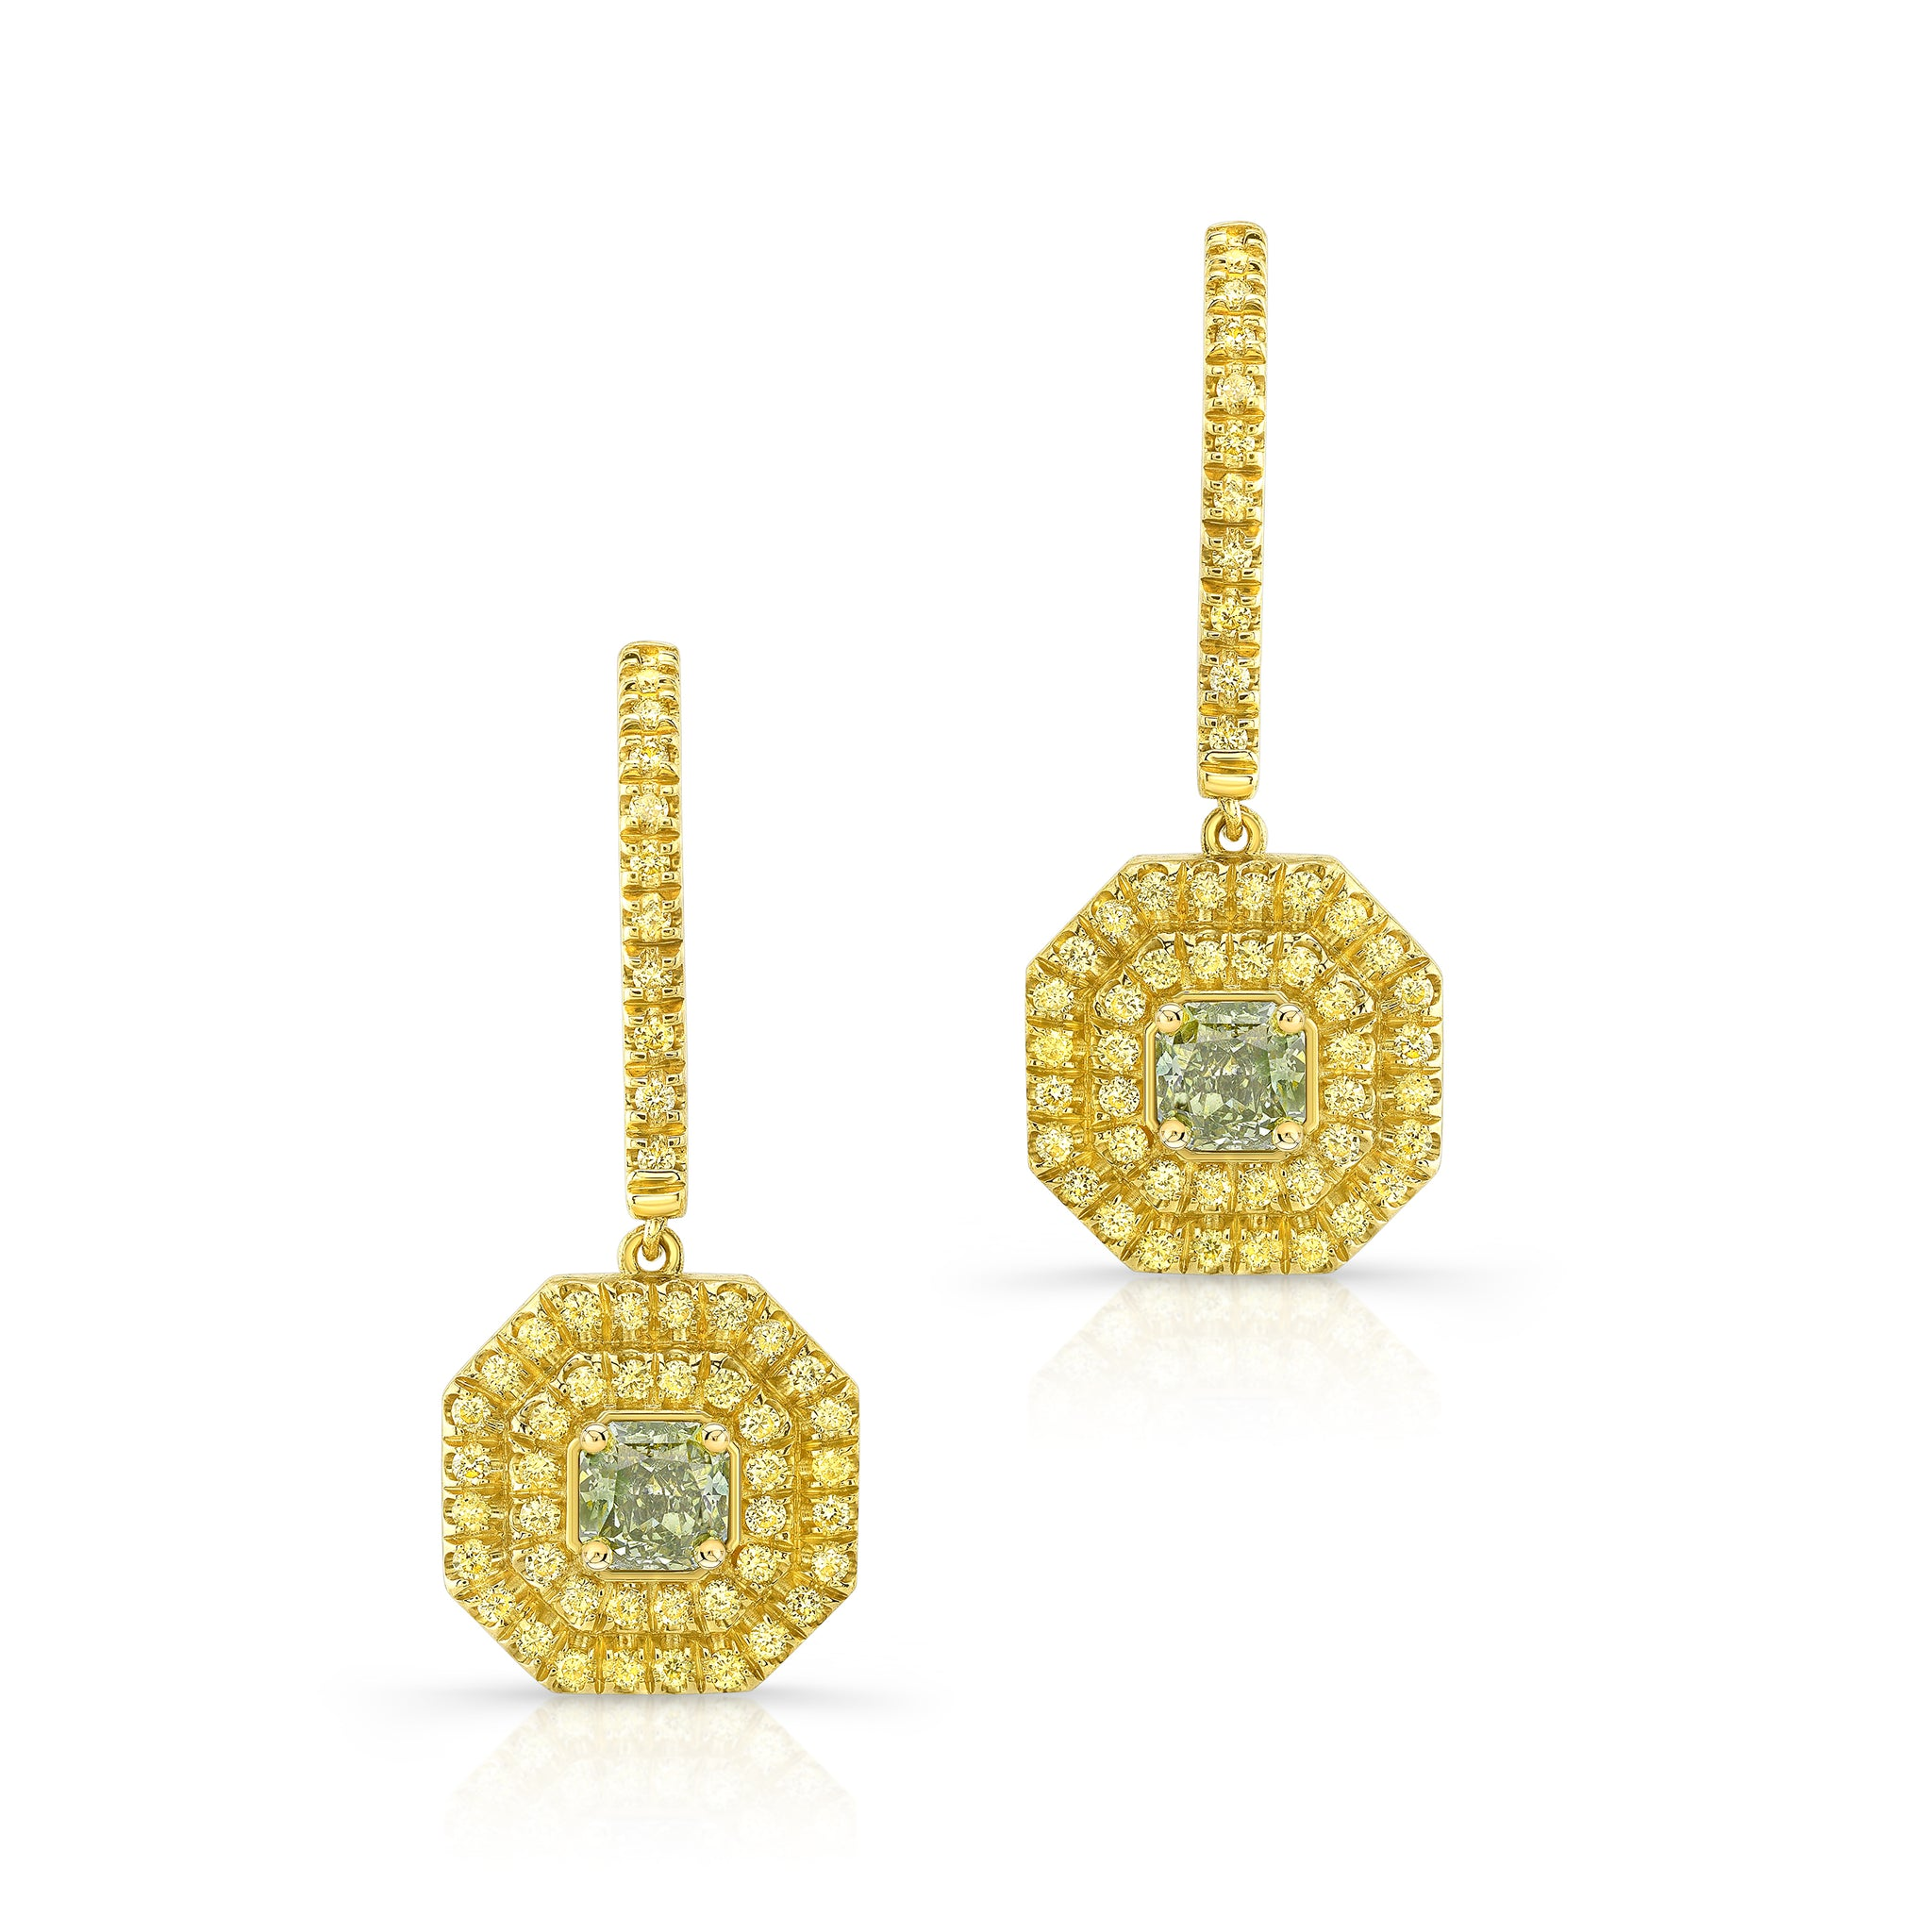 Green & Yellow Diamond Earrings